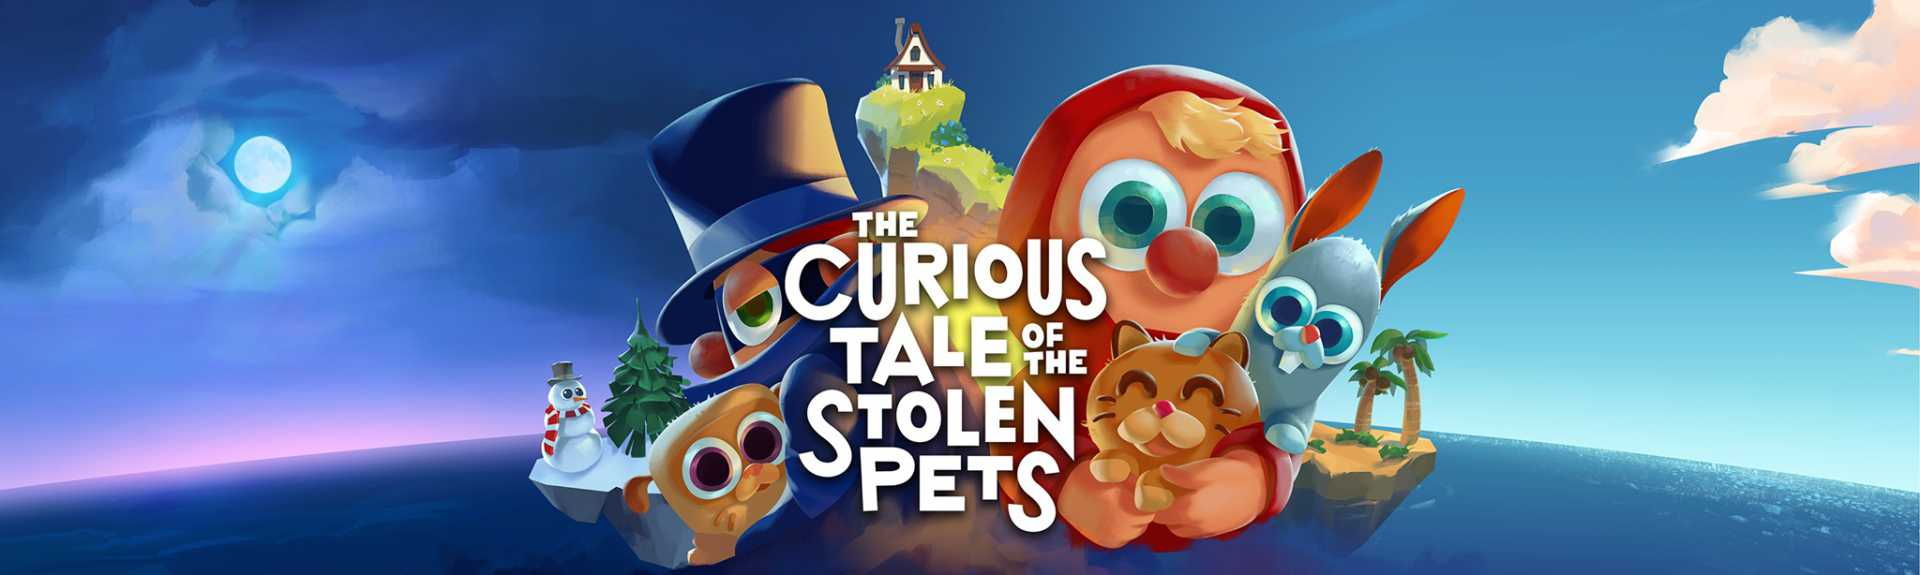 The Curious Tale of the Stolen Pets: ANÁLISIS